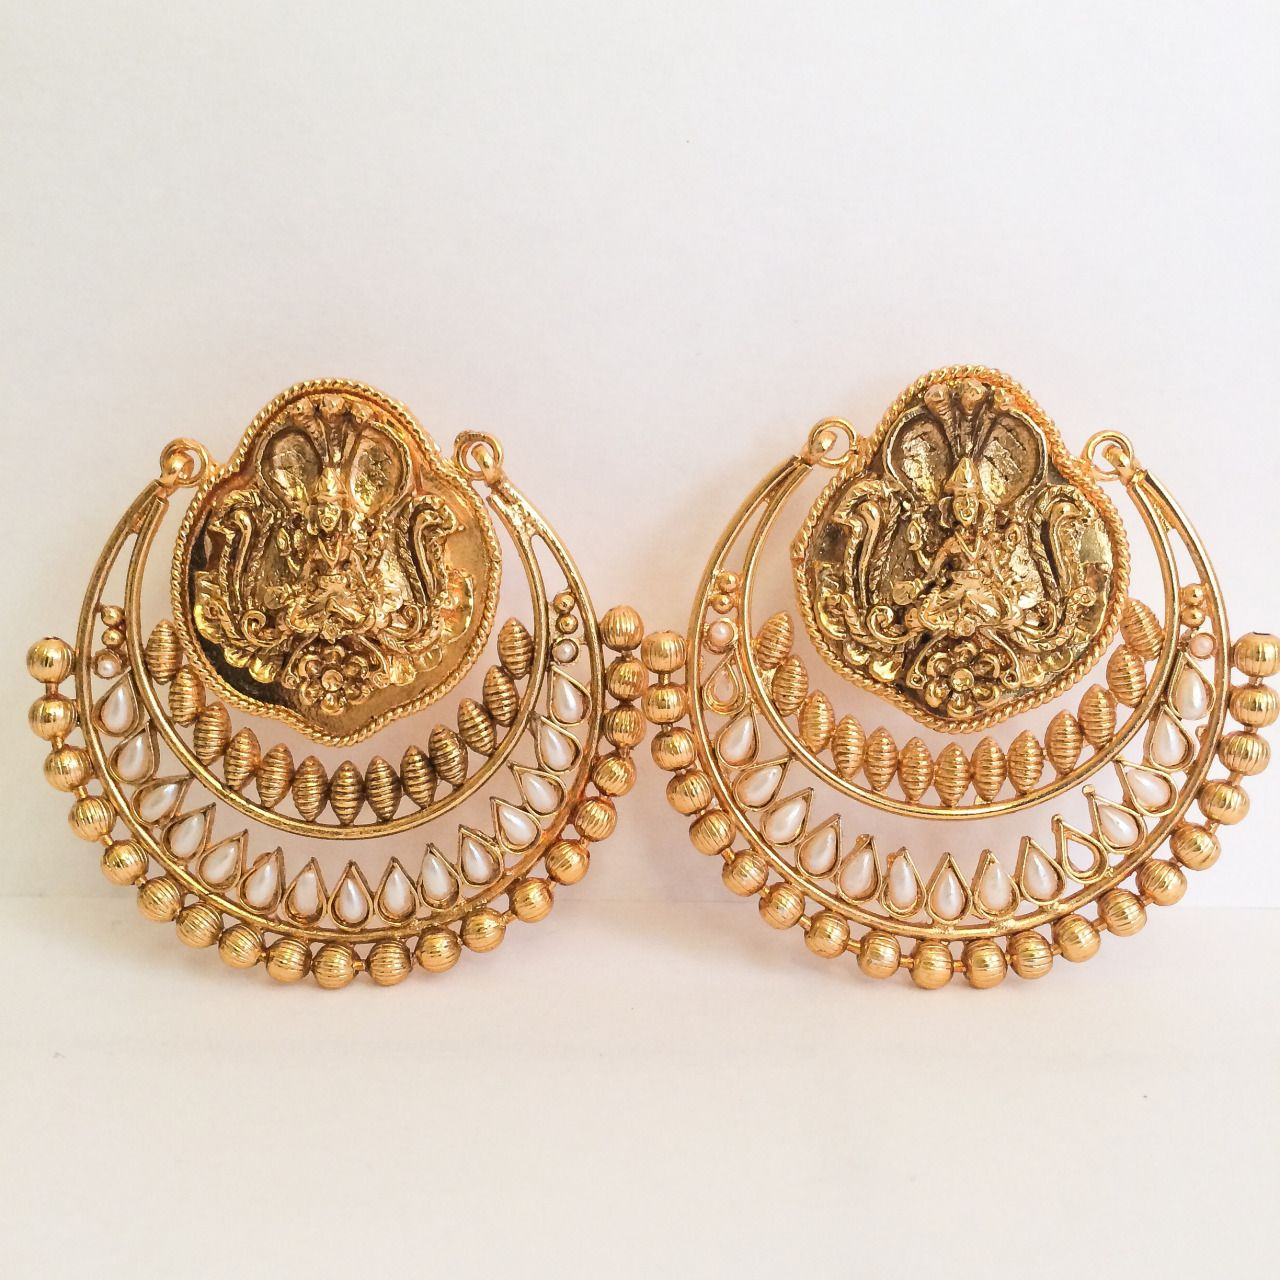 bc09d15653b25 deepika's earrings in ramleela | The weave in 2019 | Earrings ...